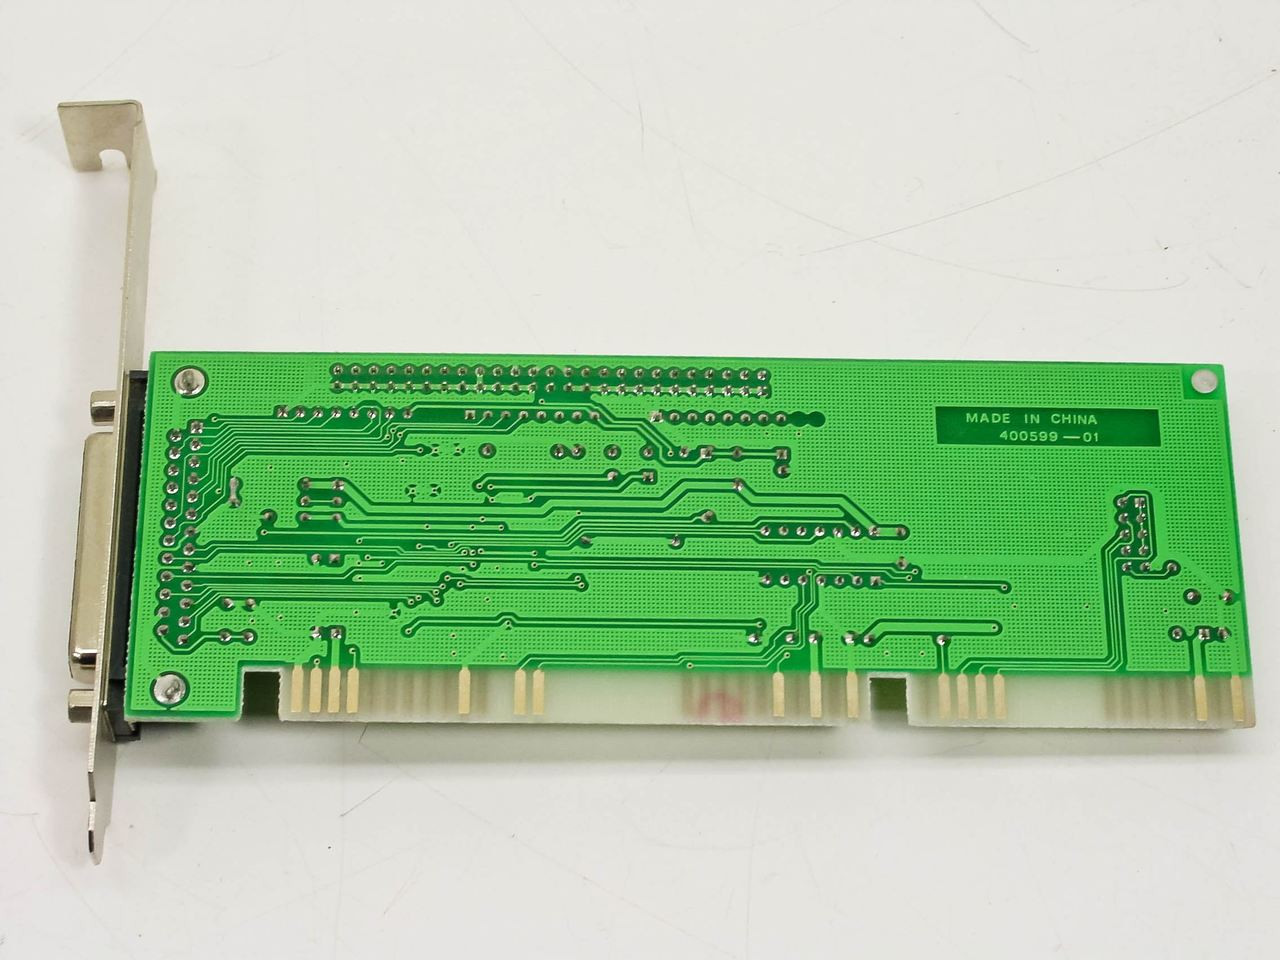 Smart & Friendly ISA SCSI Controller Card 16 Bit (3510A)